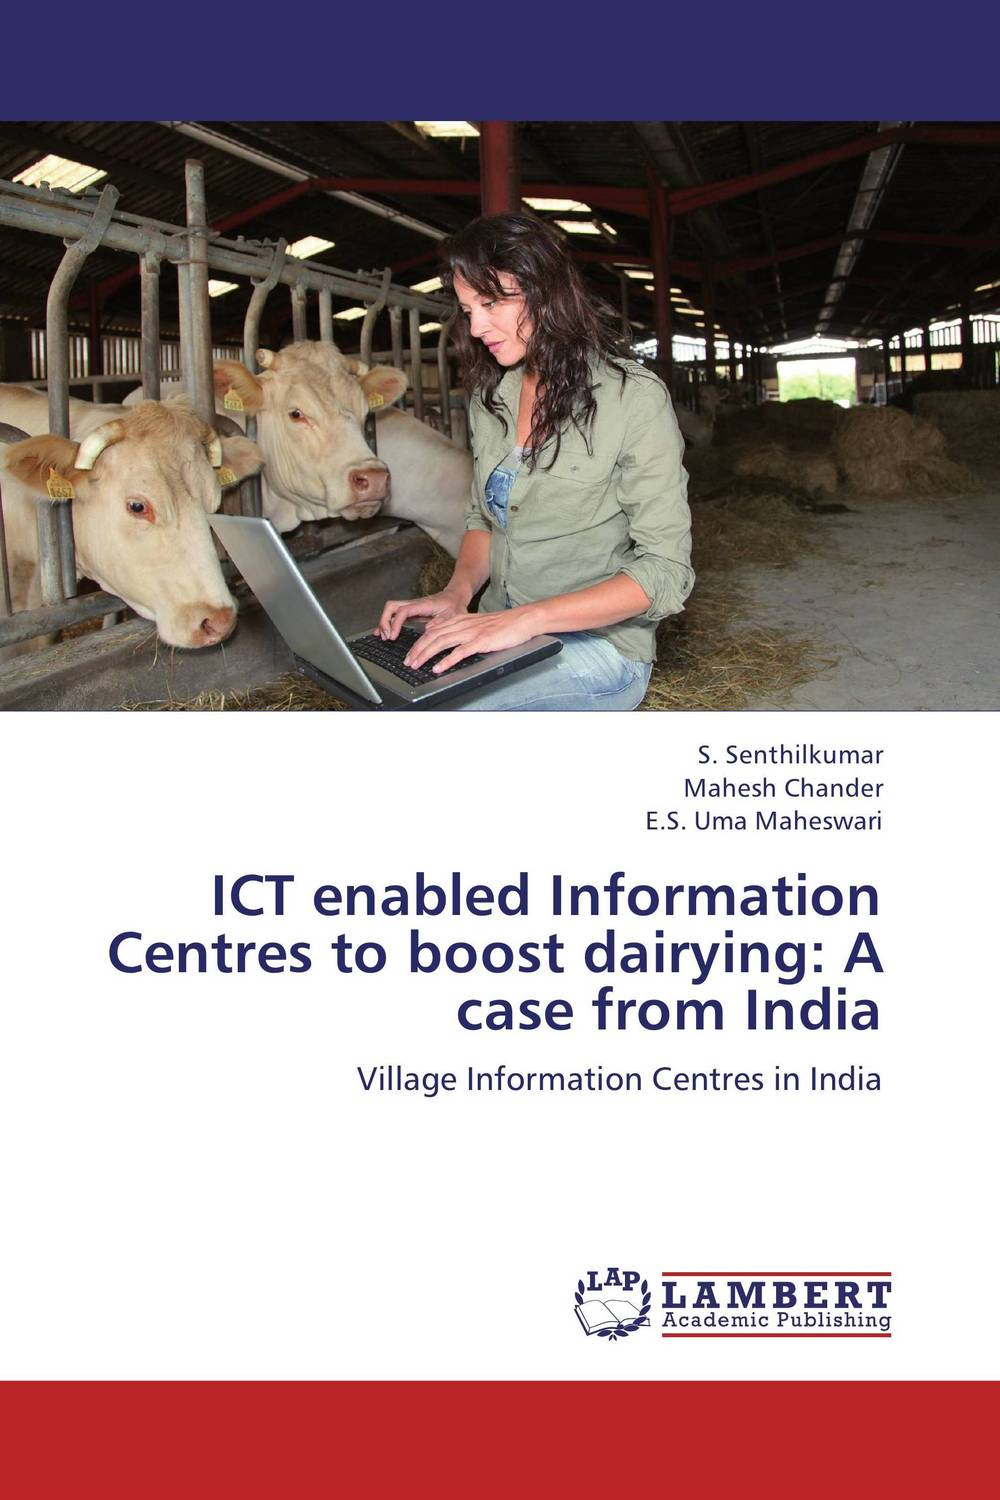 ICT enabled Information Centres to boost dairying: A case from India ict in disaster management case study of kenya red cross society